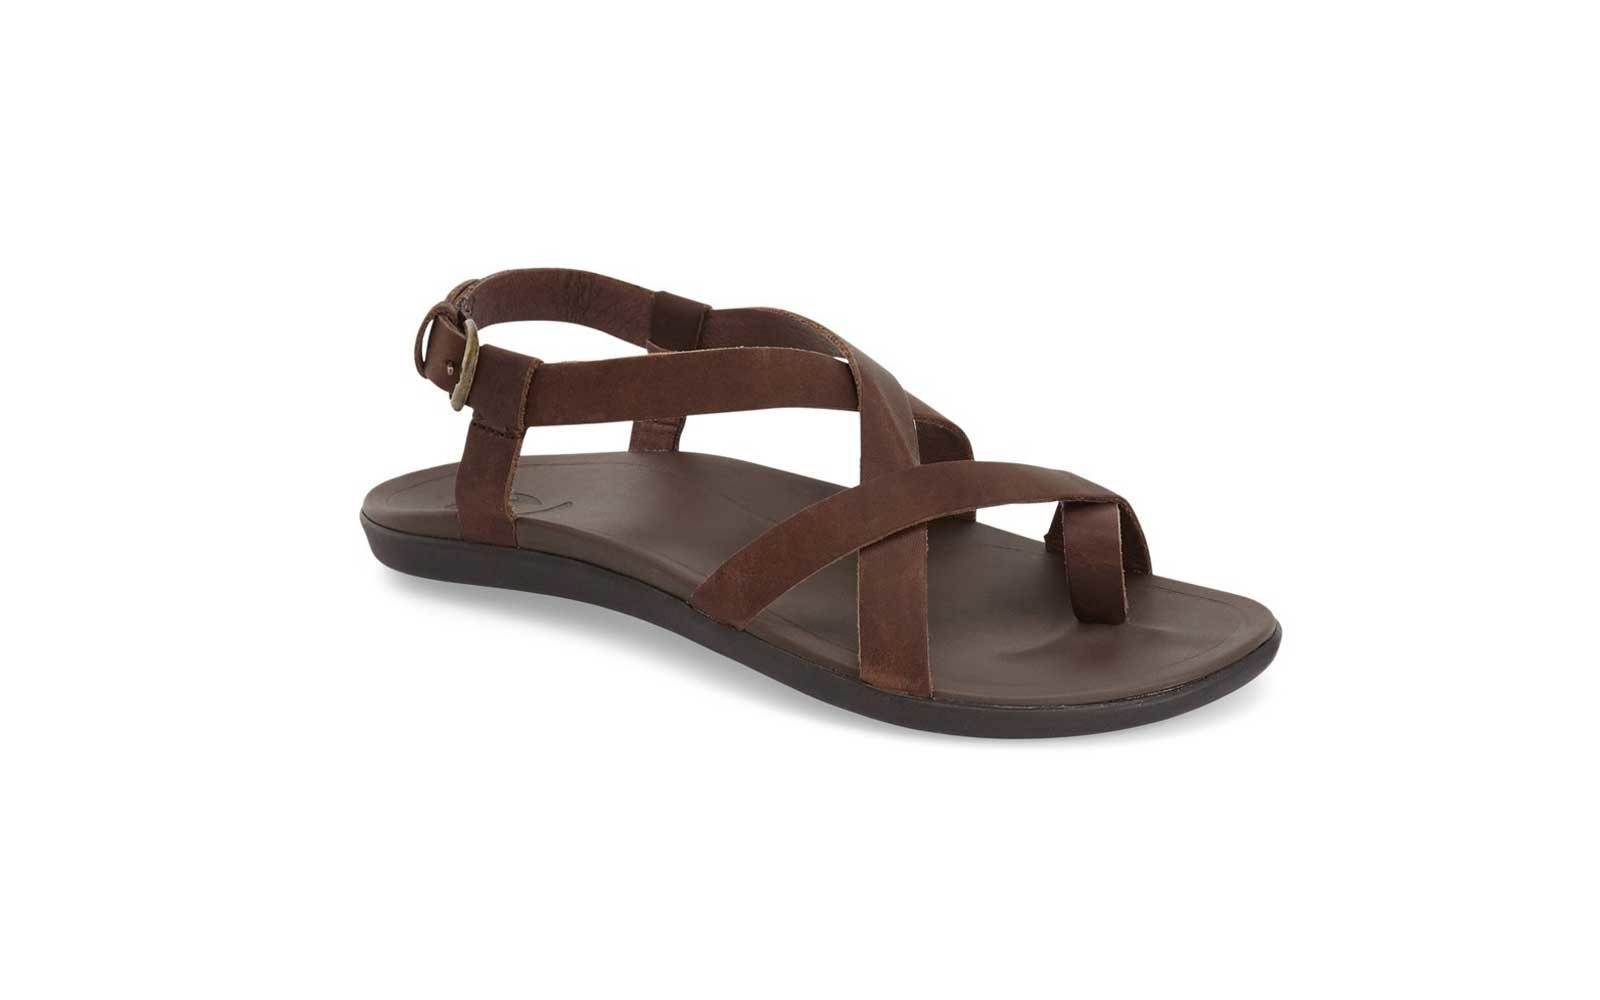 6d6625c0d0d80 Lightweight Leather  Olukai  Upena  Flat Sandal. womens olukai sandals